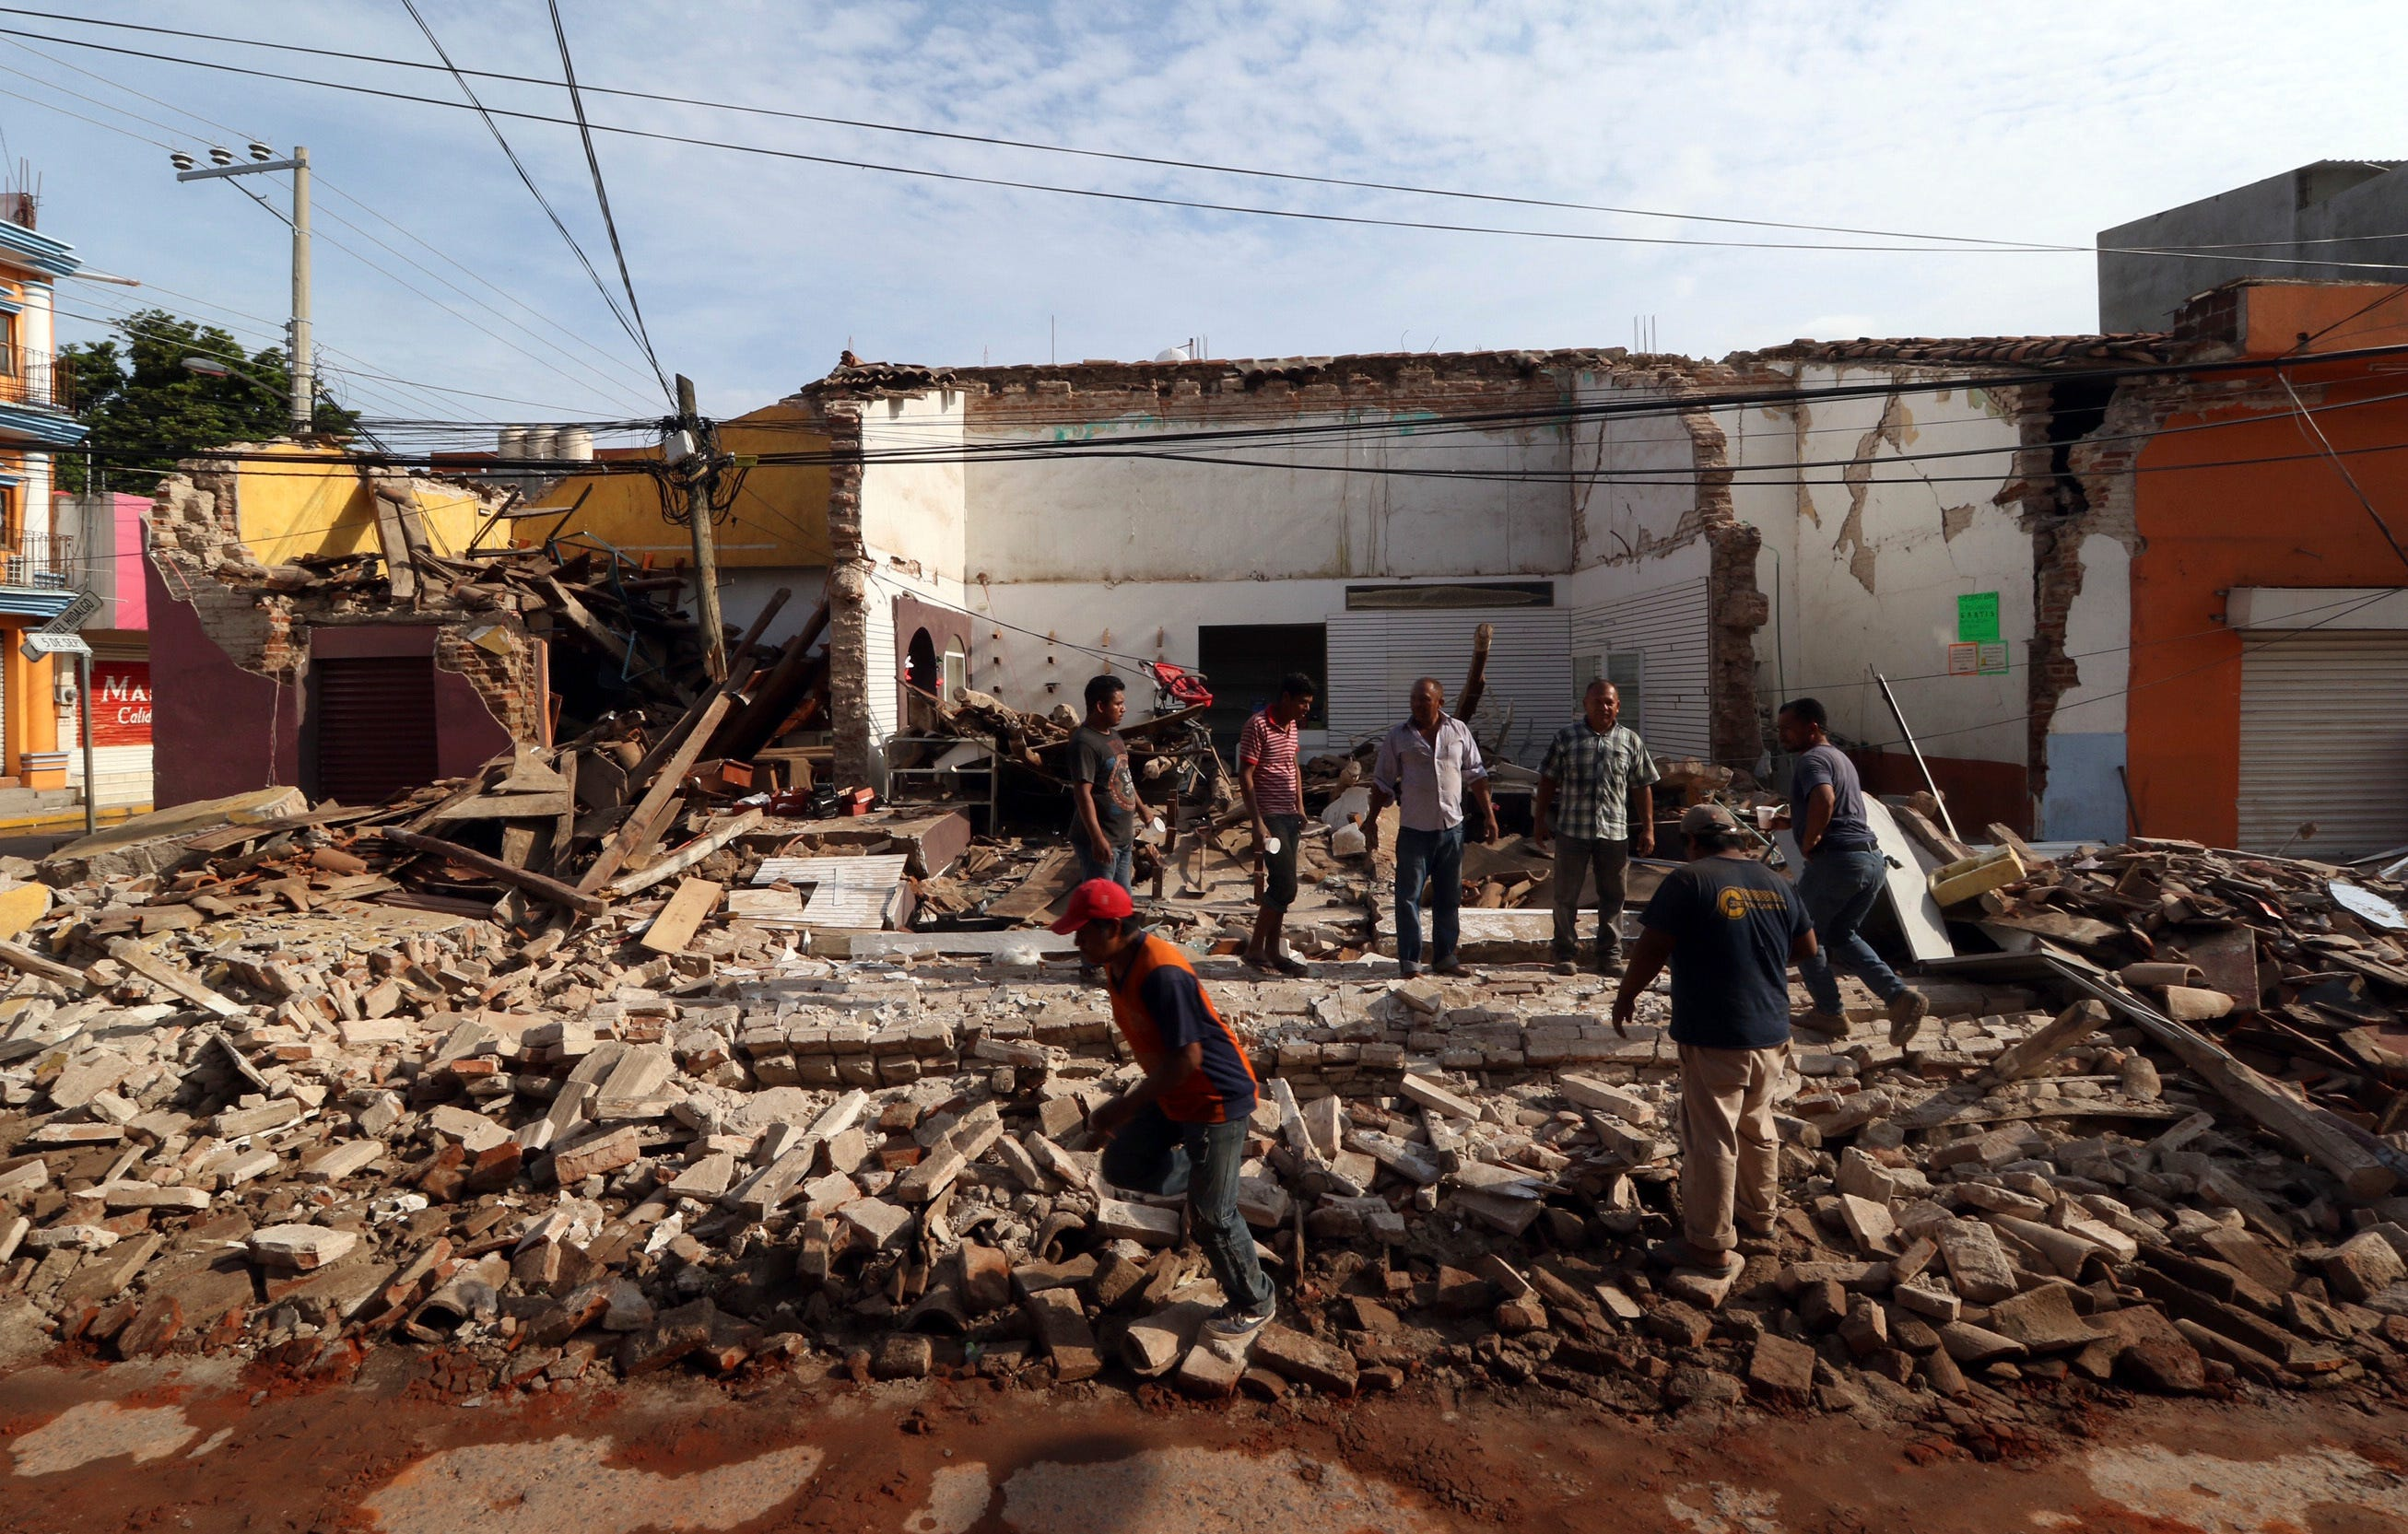 Mexico has suffered from a powerful earthquake 31